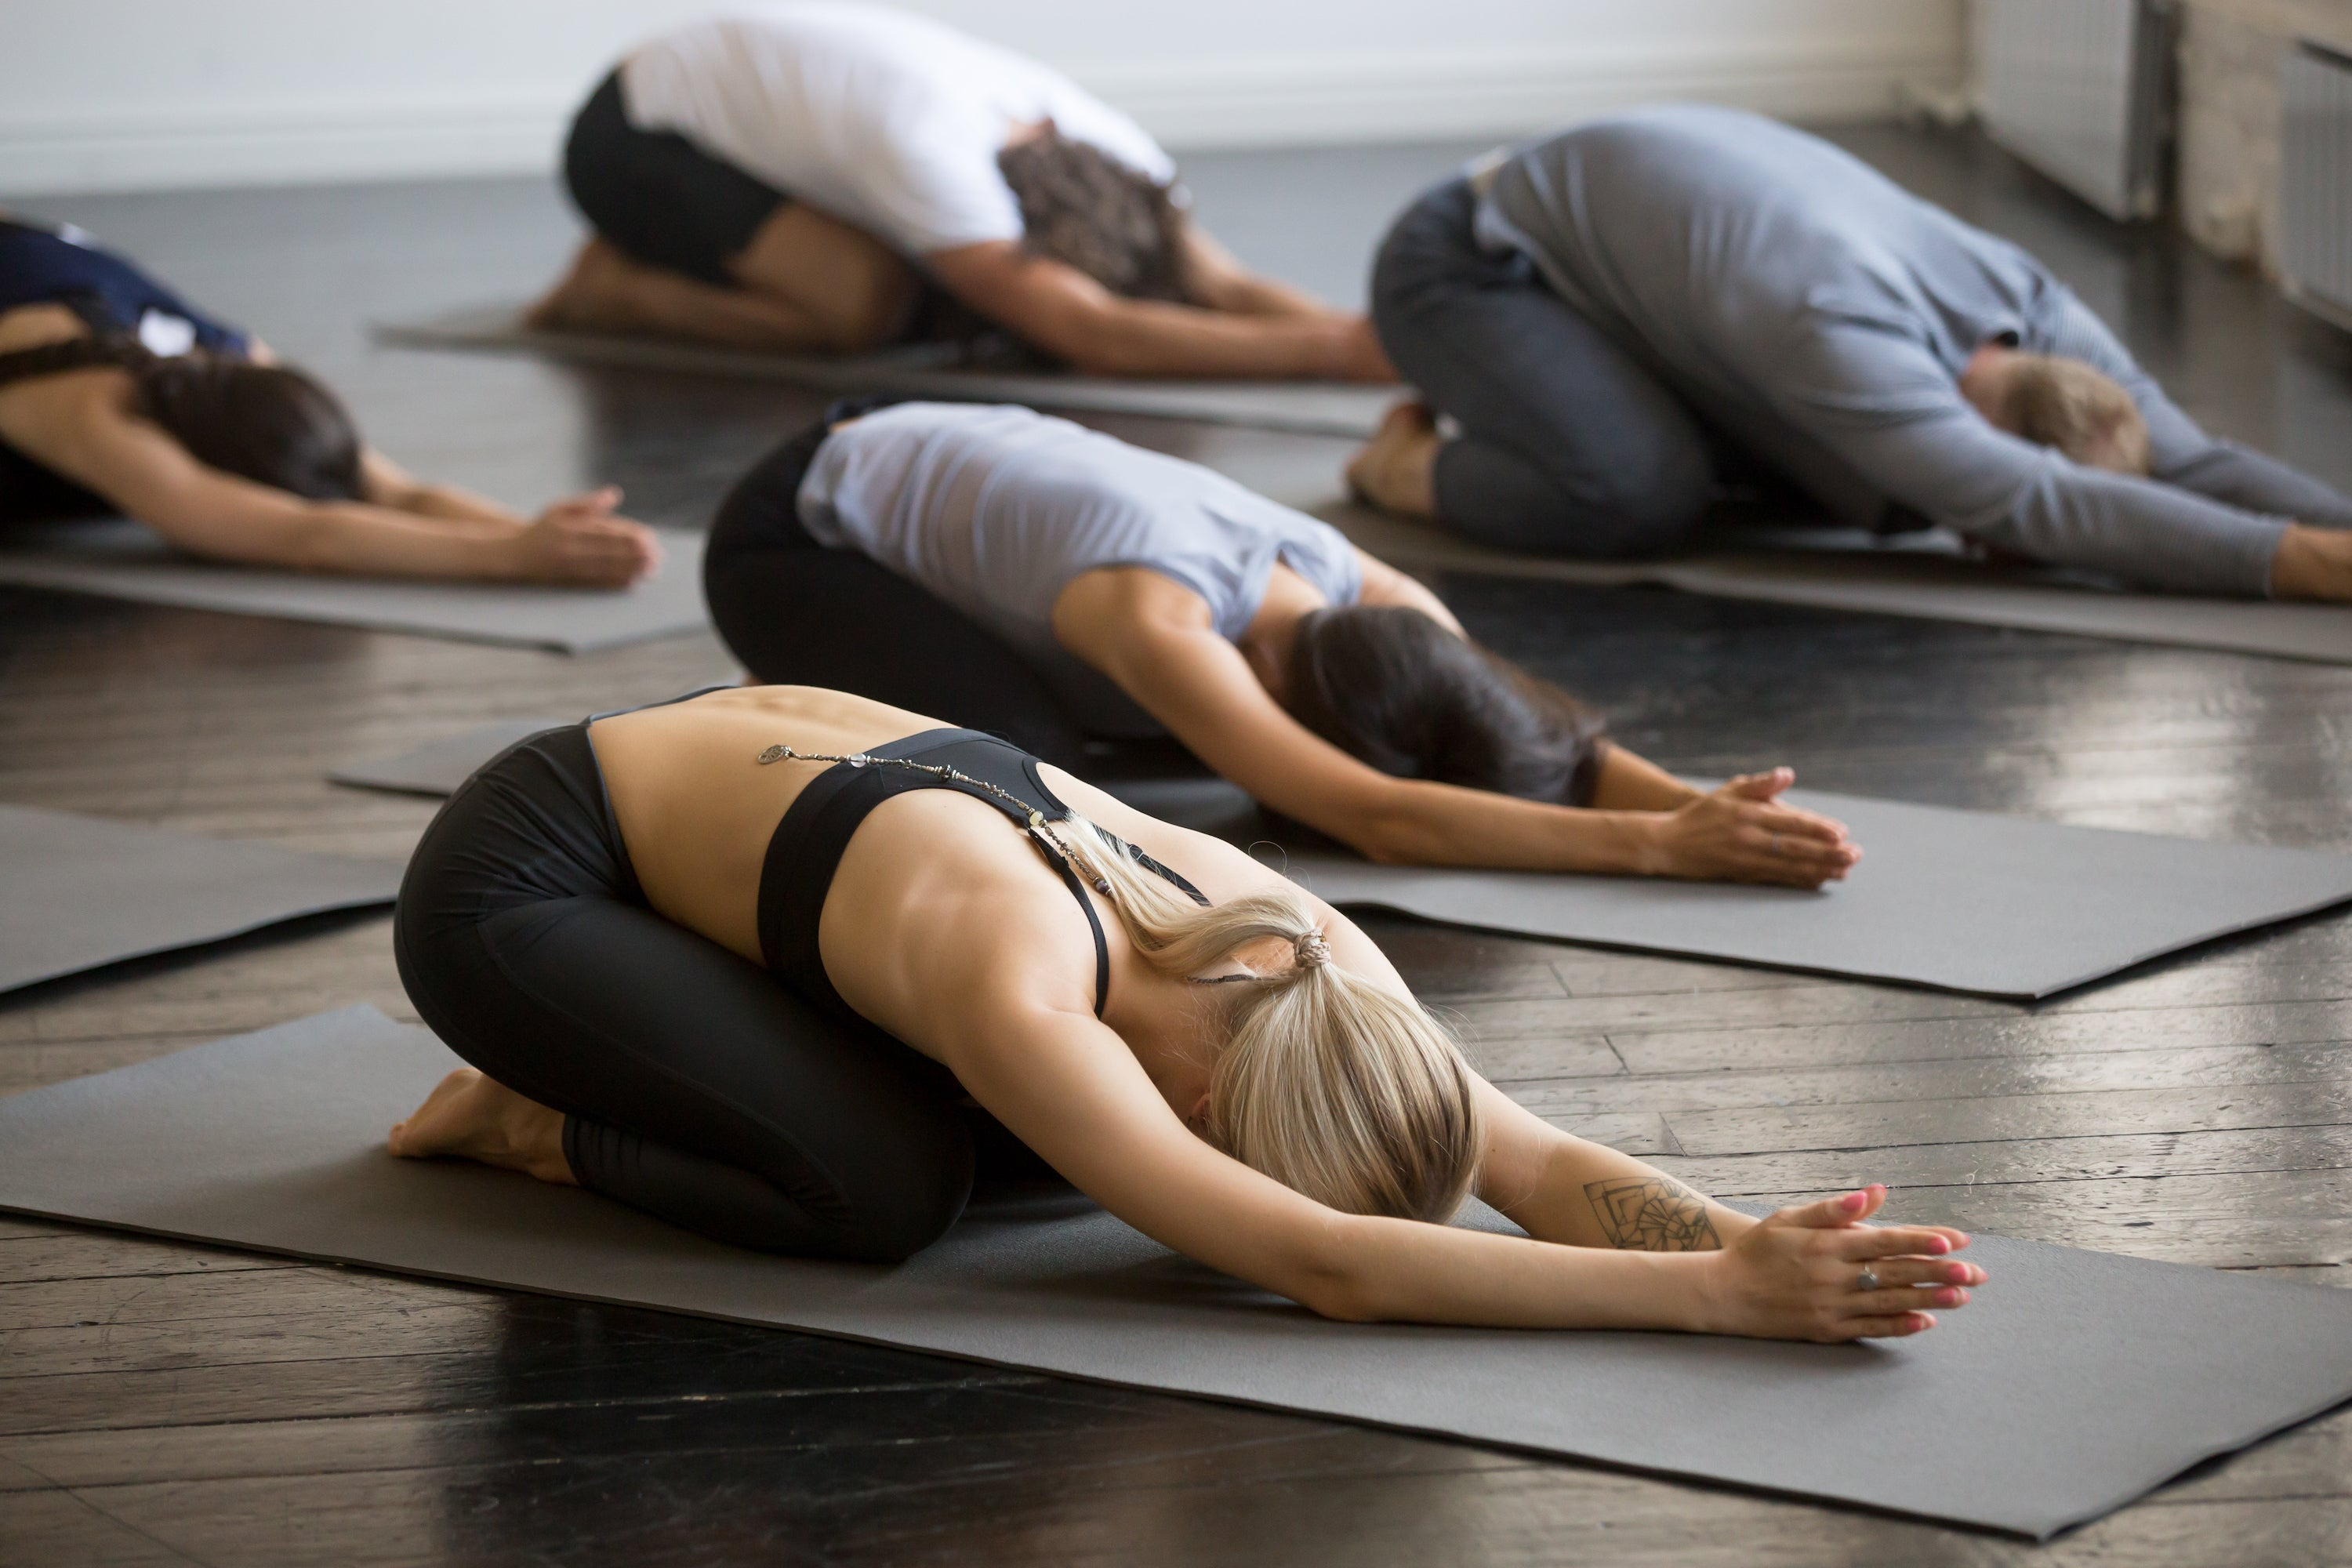 group of people in yoga studio doing child's pose on mats